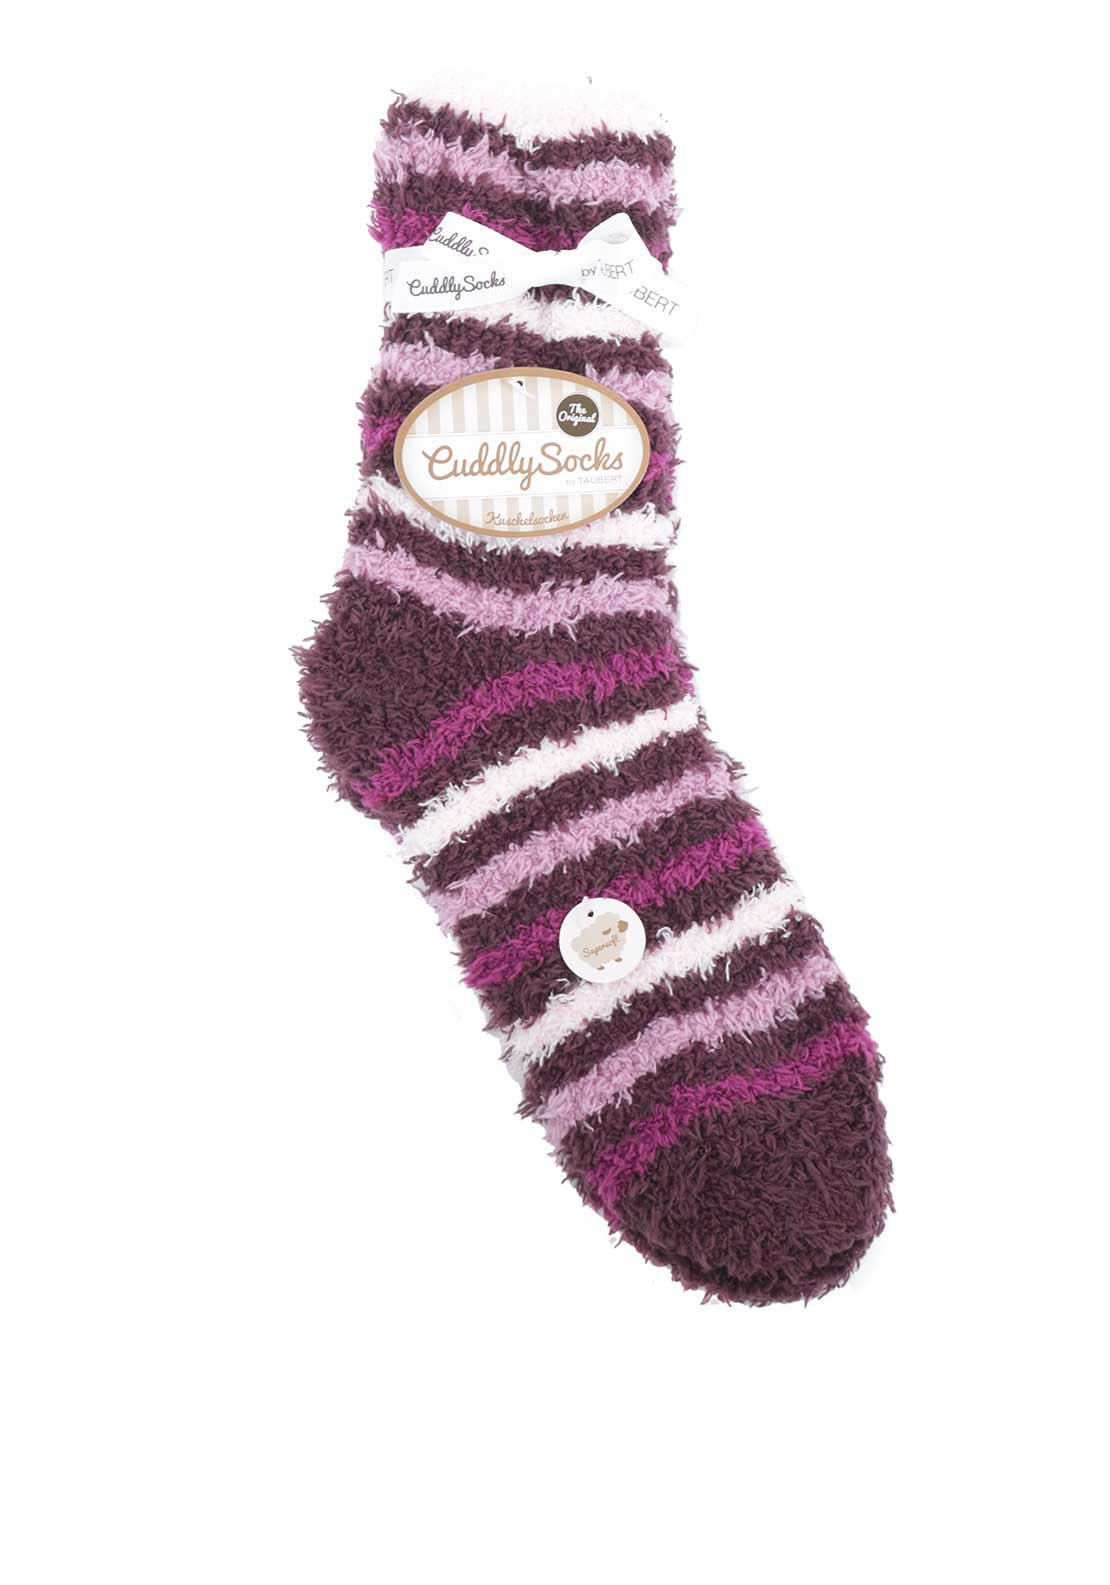 Taubert Striped Fluffy Socks, Purple